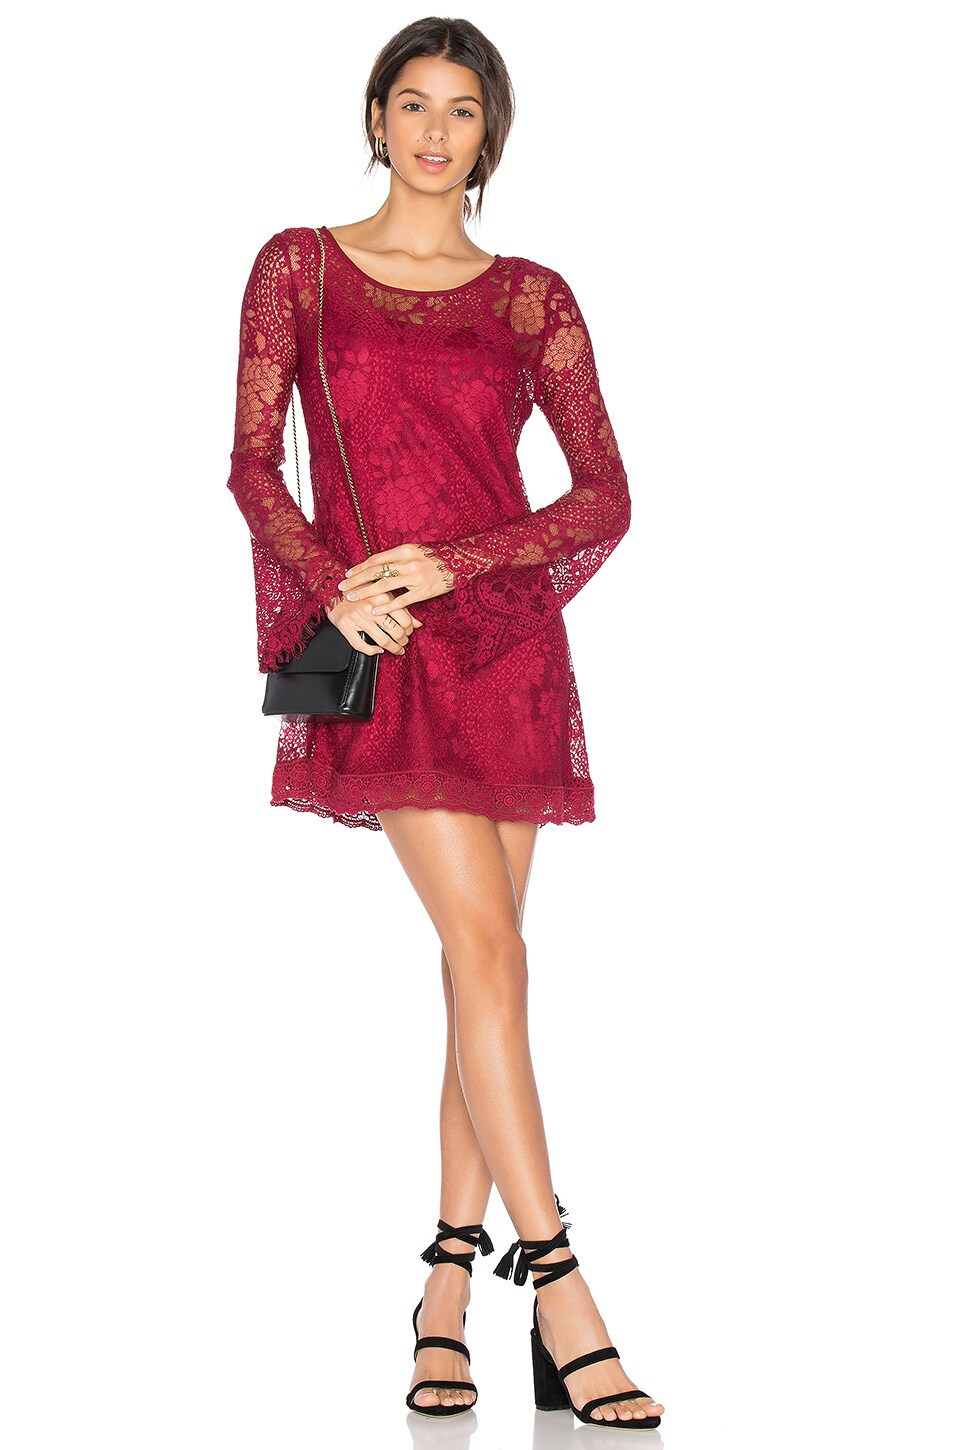 Band of Gypsies Lace Dress in Chili Pepper Red